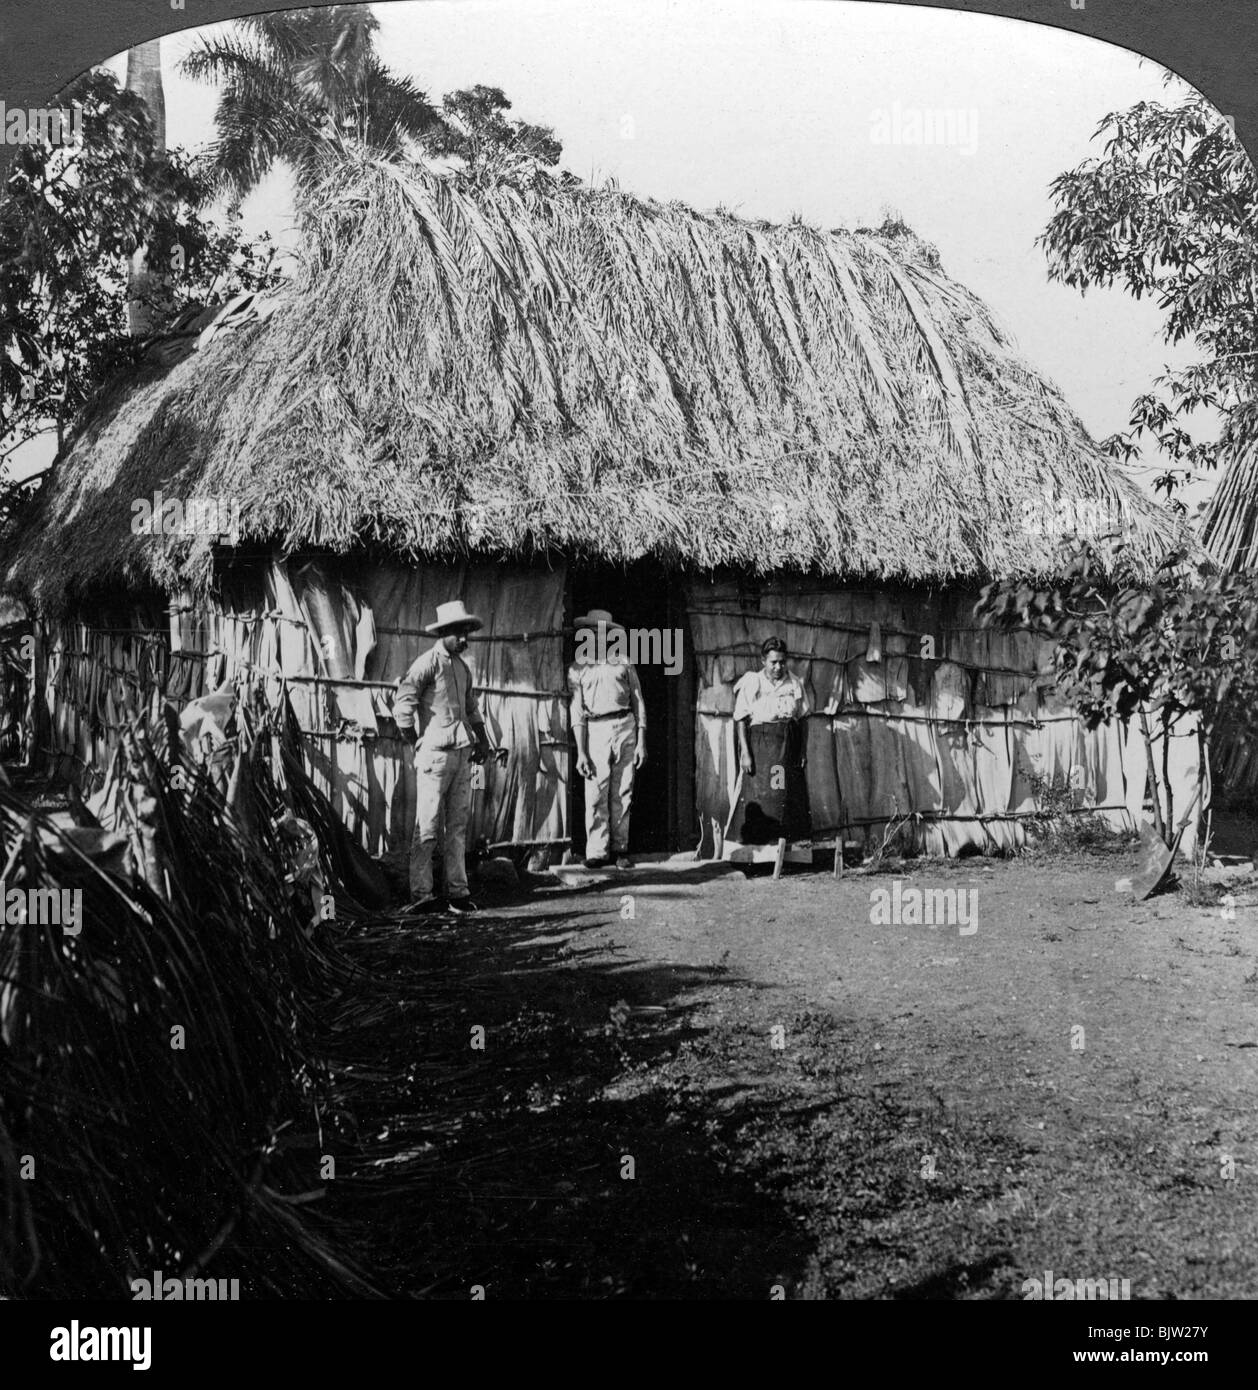 A home in the interior of the island of Cuba. Stereoscopic card detail. - Stock Image